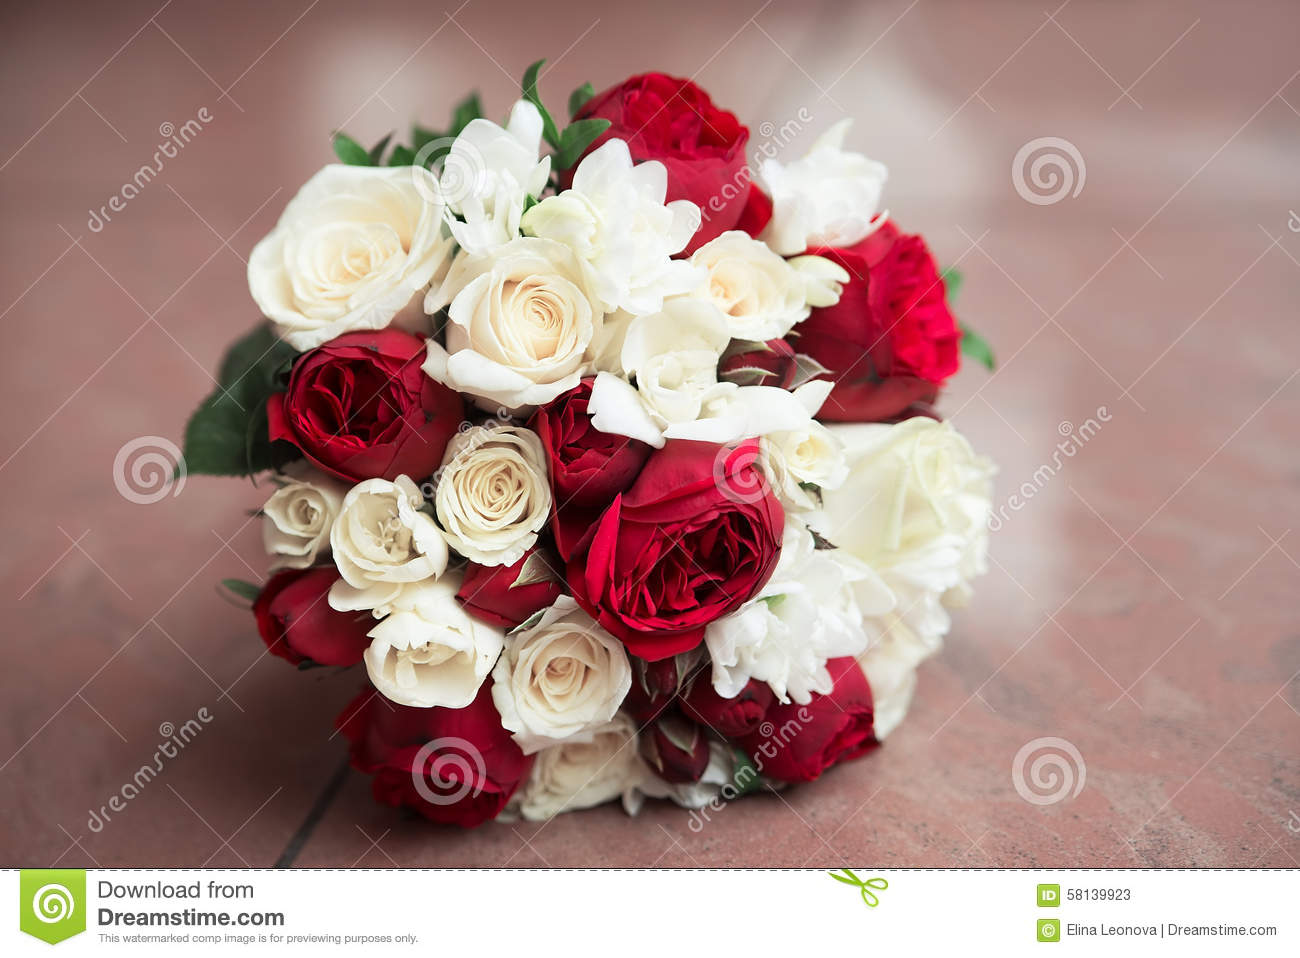 Wedding Bouquet With Red And White Roses Stock Image Image Of